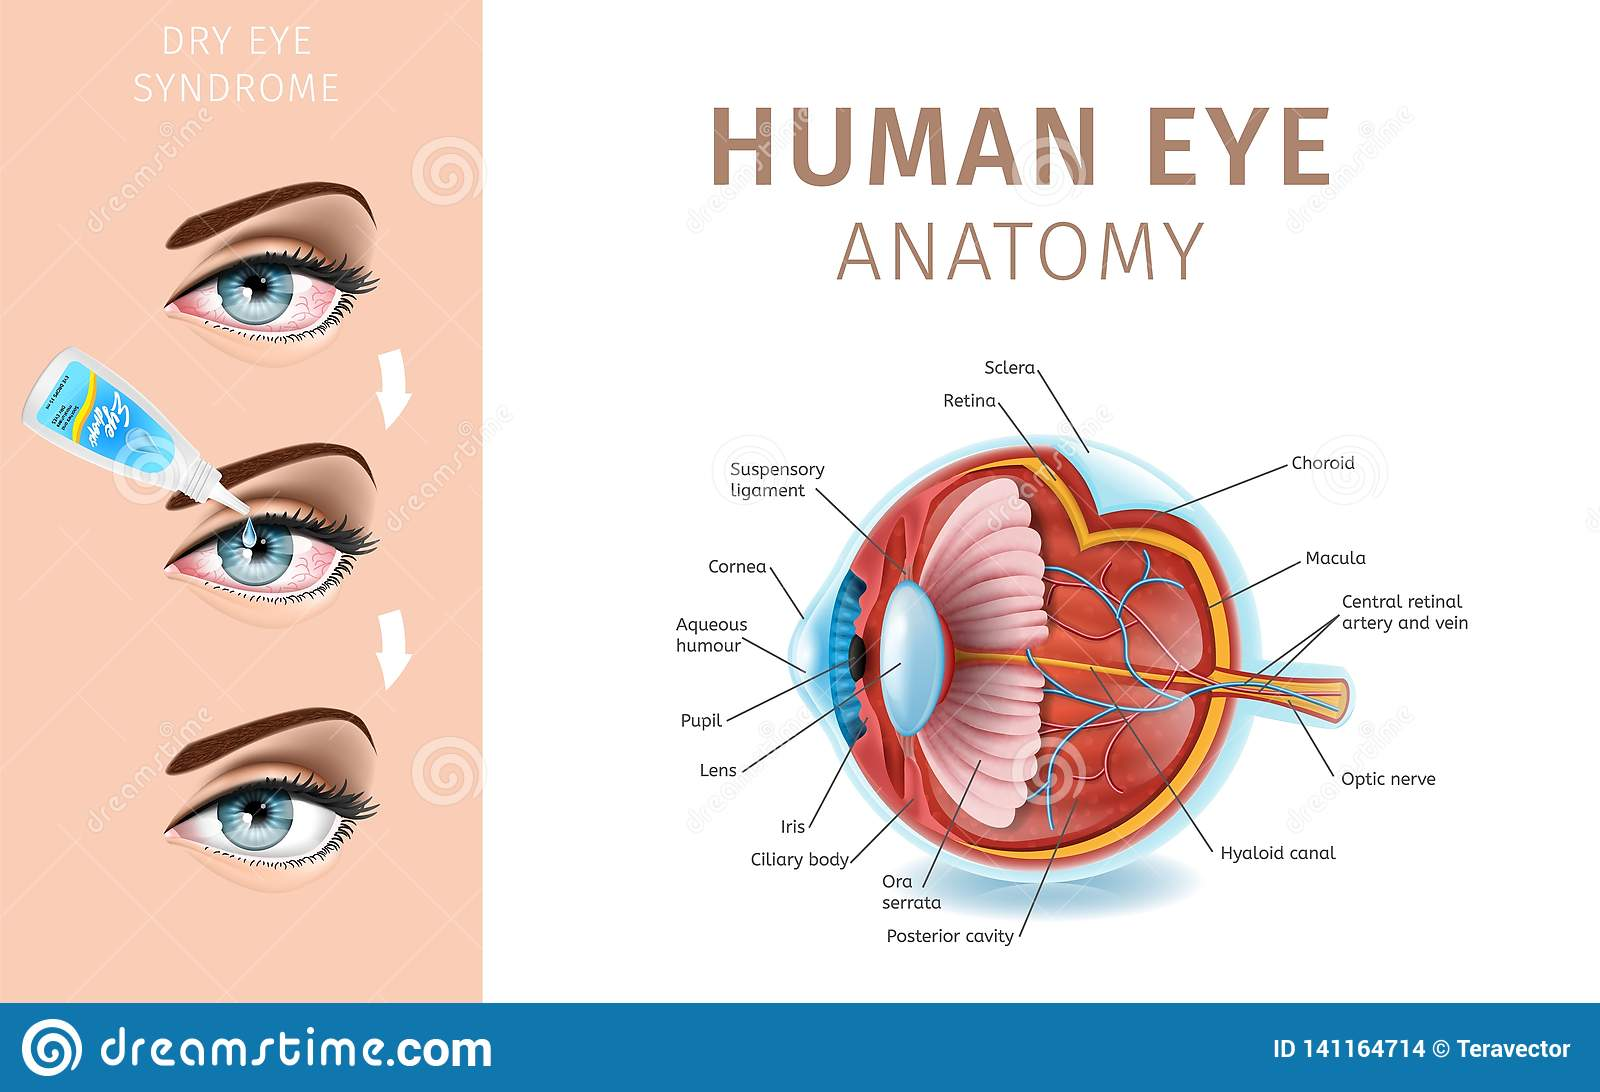 Section Of Eye Schematic Diagram. Dry Eye Syndrome Stock ... on cross section of the eye, flowchart of the eye, schematic eye retinoscopy, sagittal section of the eye, schematic section of the human eye, cutaway view of the eye, midsagittal section of the eye, transverse section of the eye, cross section diagram of eye,